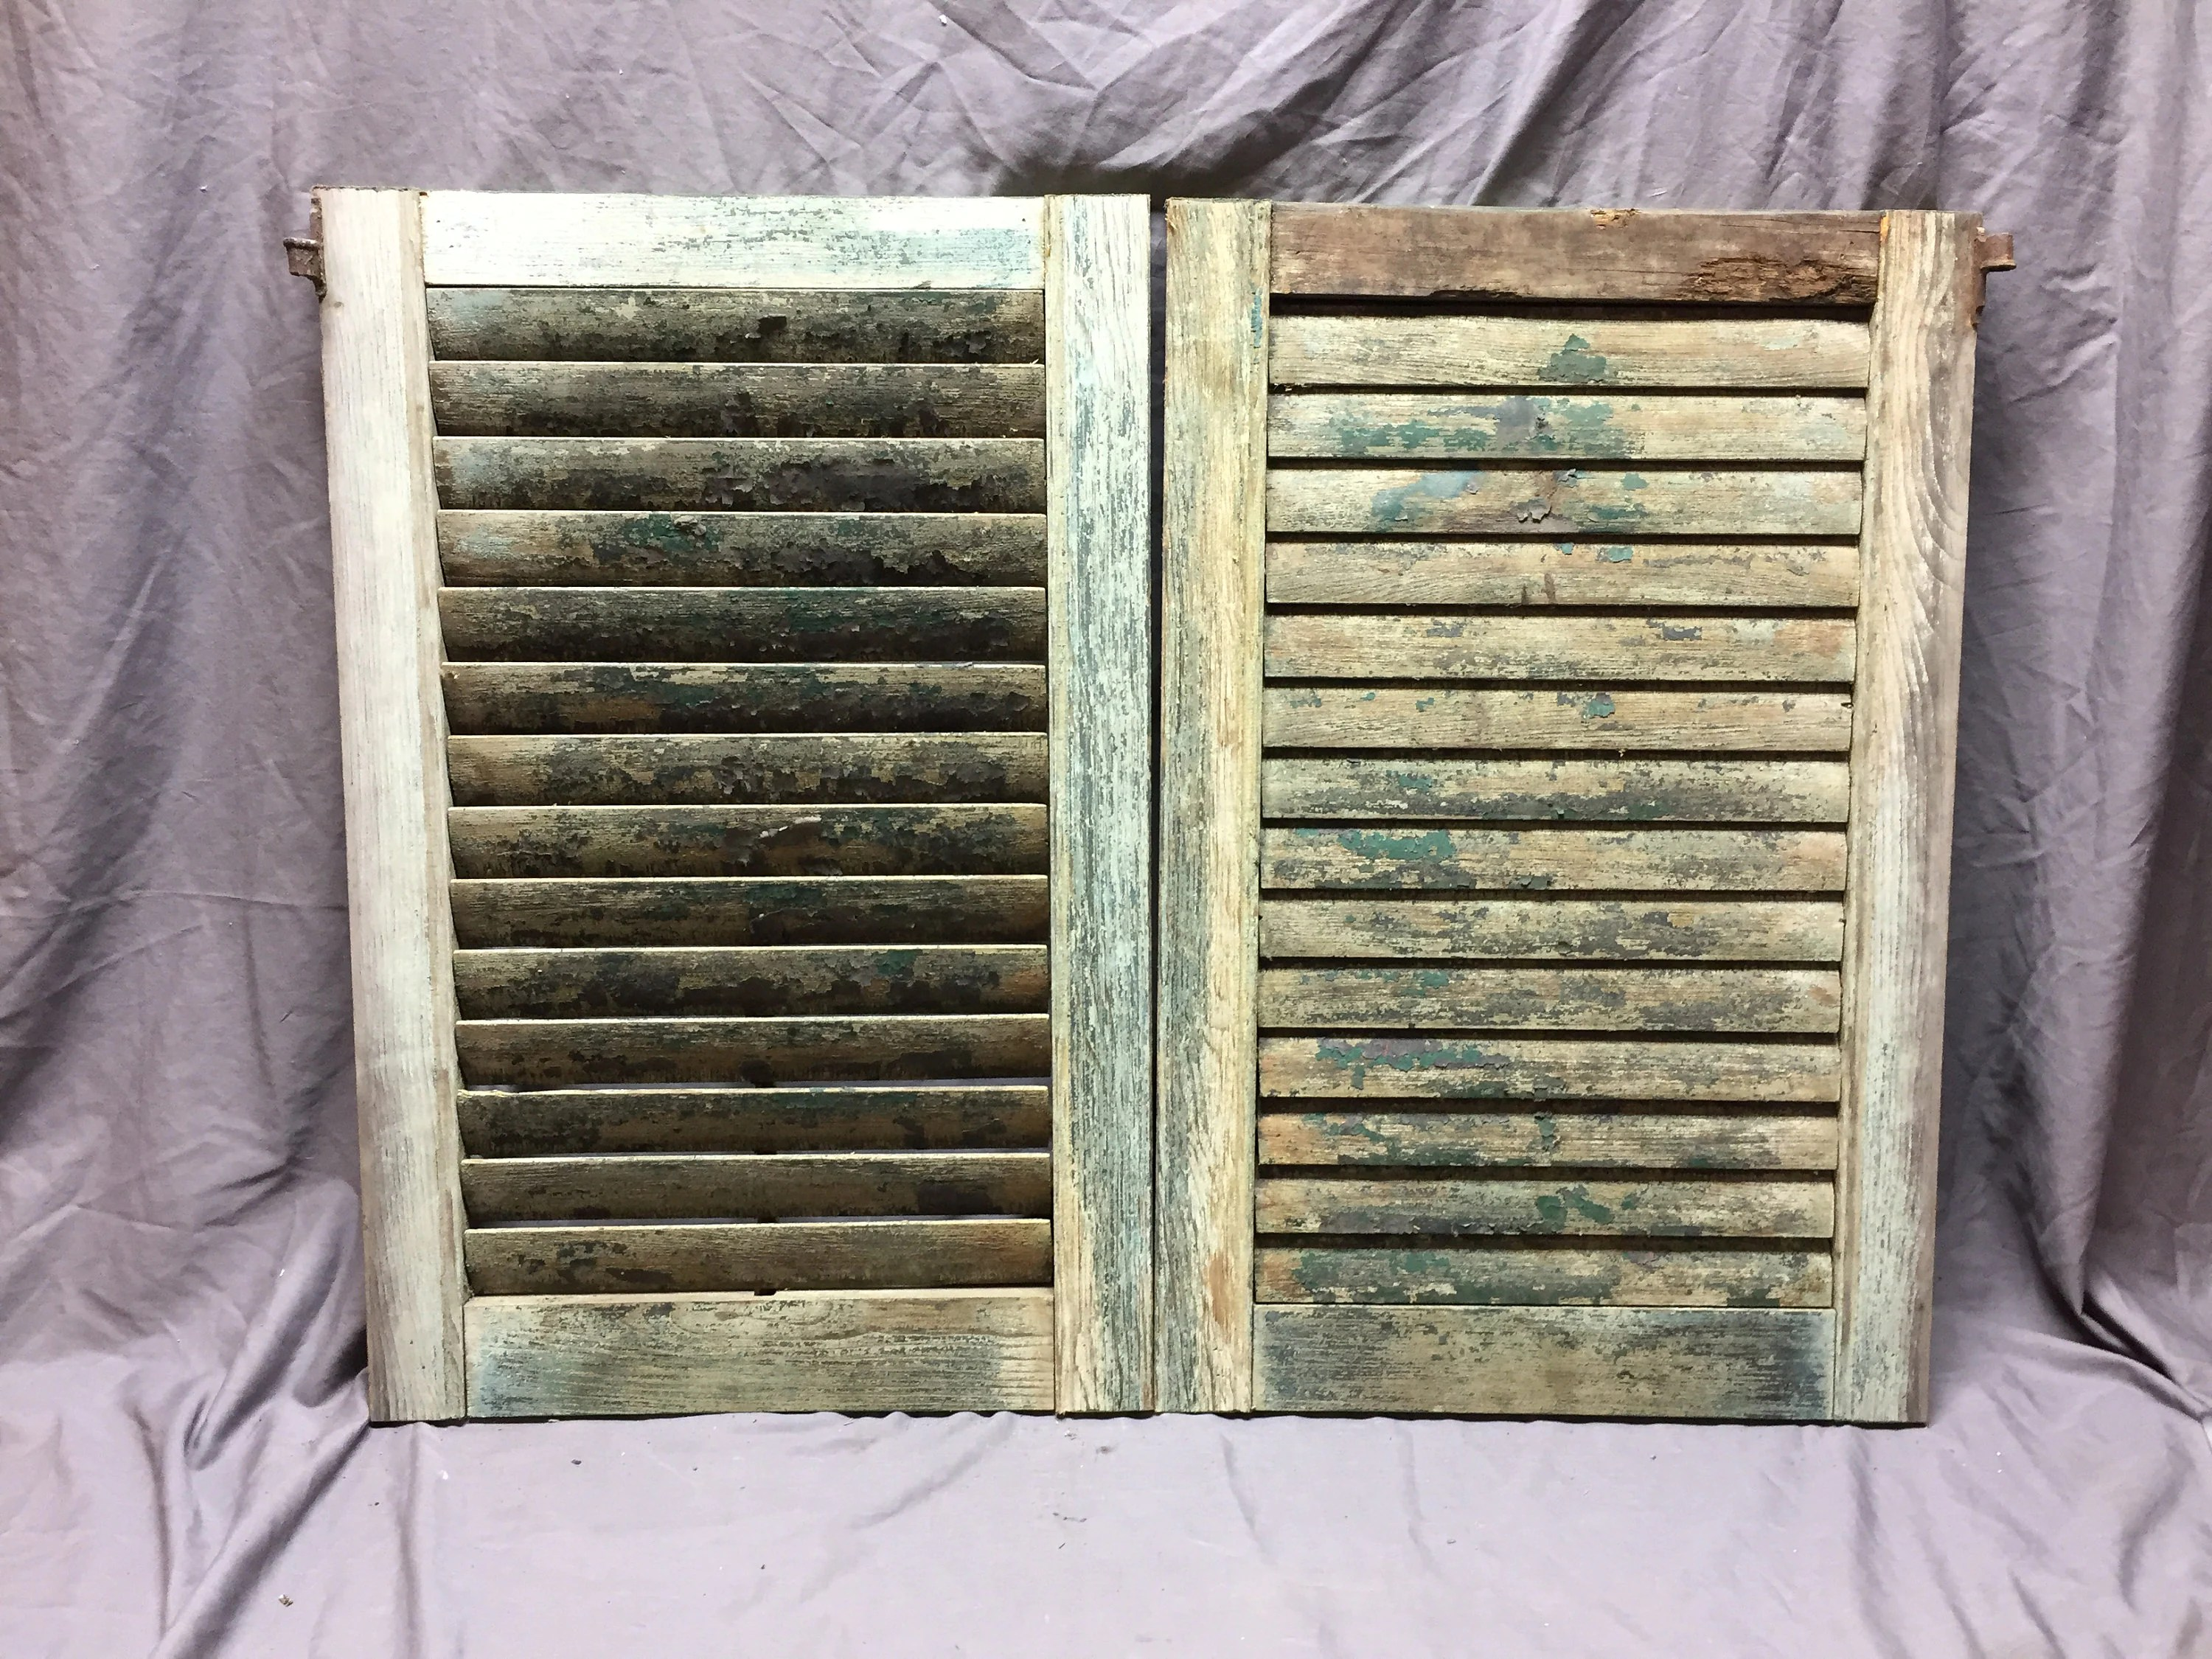 Small Pair Antique Faded Green House Window Wood Louvered Shutters 19x29 Shabby Vintage Chic 561 18